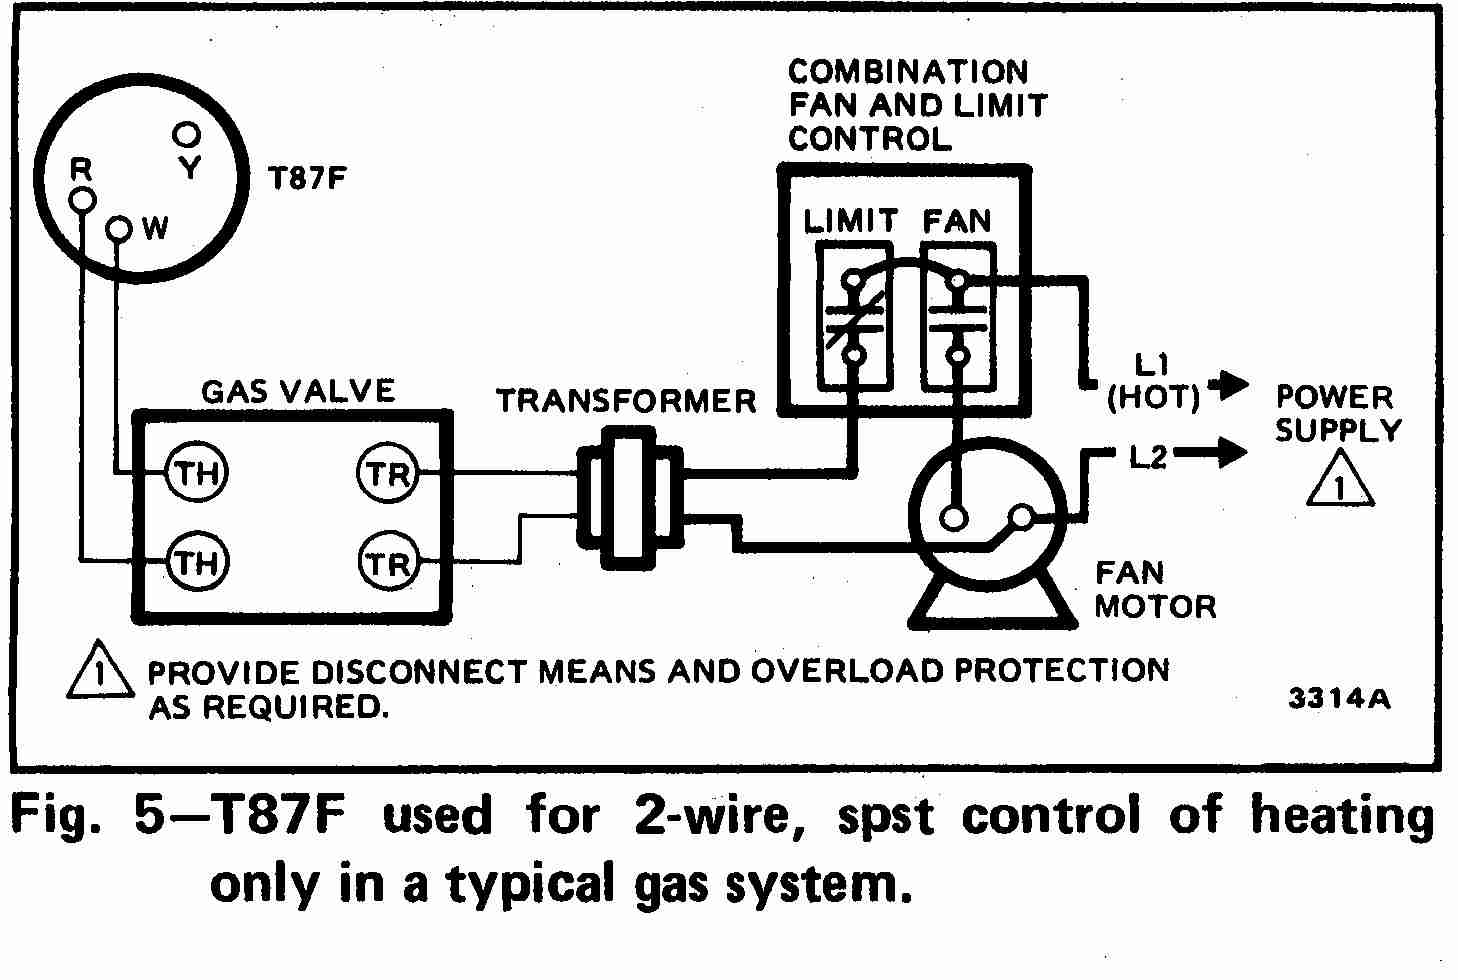 TT_T87F_0002_2Wg_DJF room thermostat wiring diagrams for hvac systems Home Electrical Wiring Diagrams at bayanpartner.co